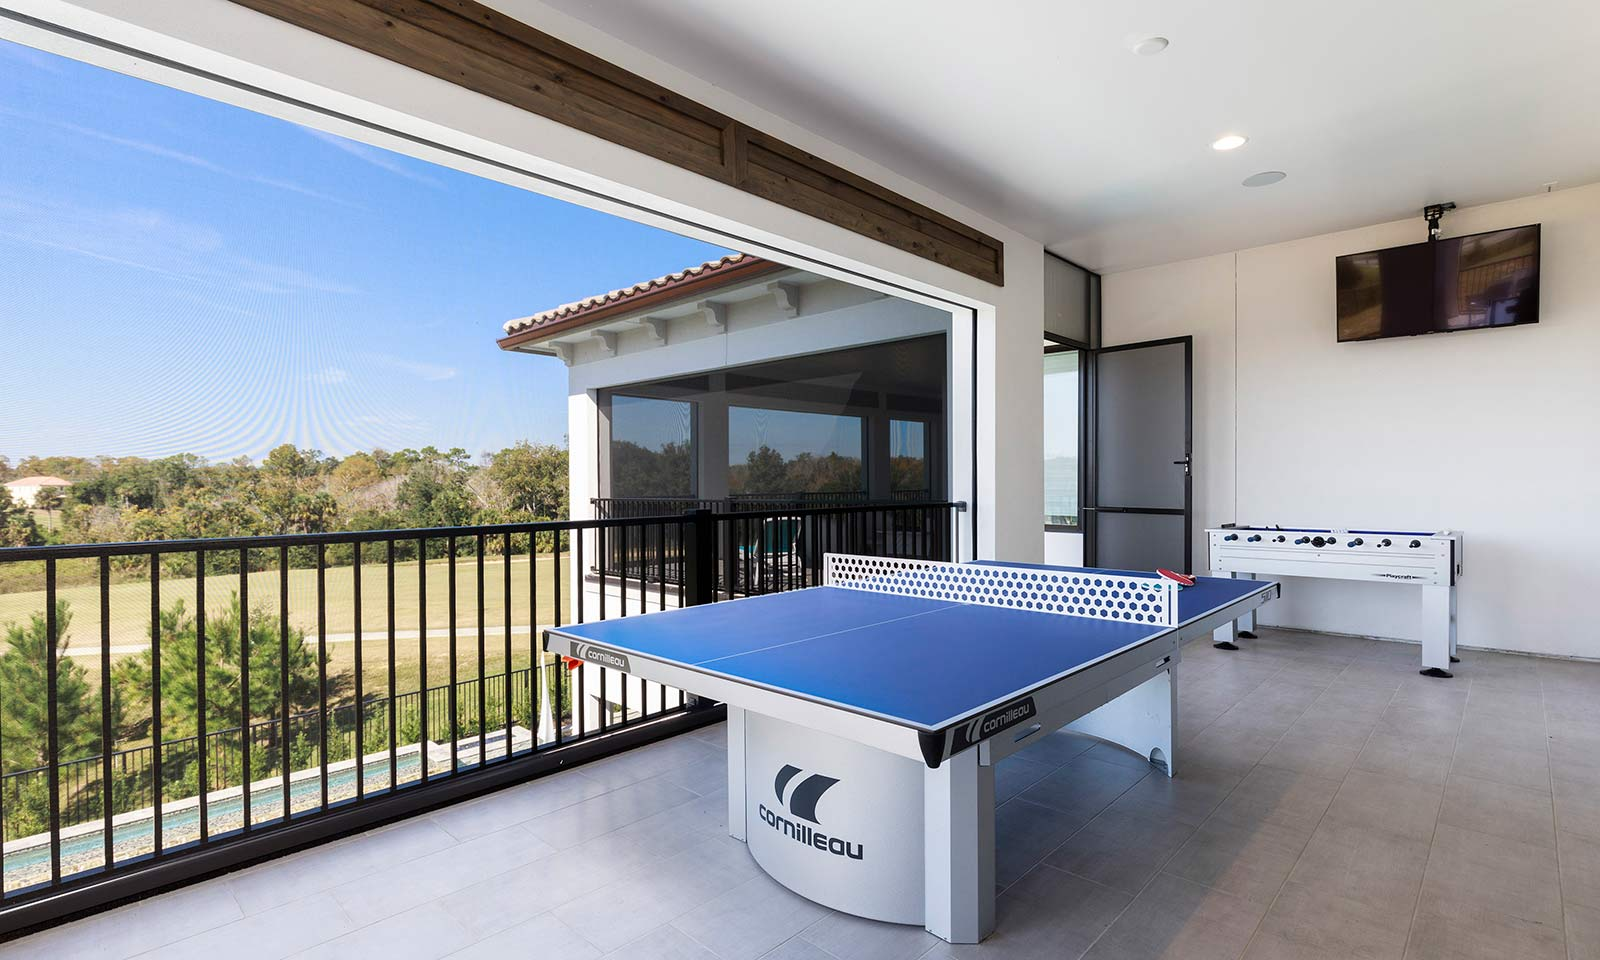 [amenities:ping-pong-table:3] Ping Pong Table